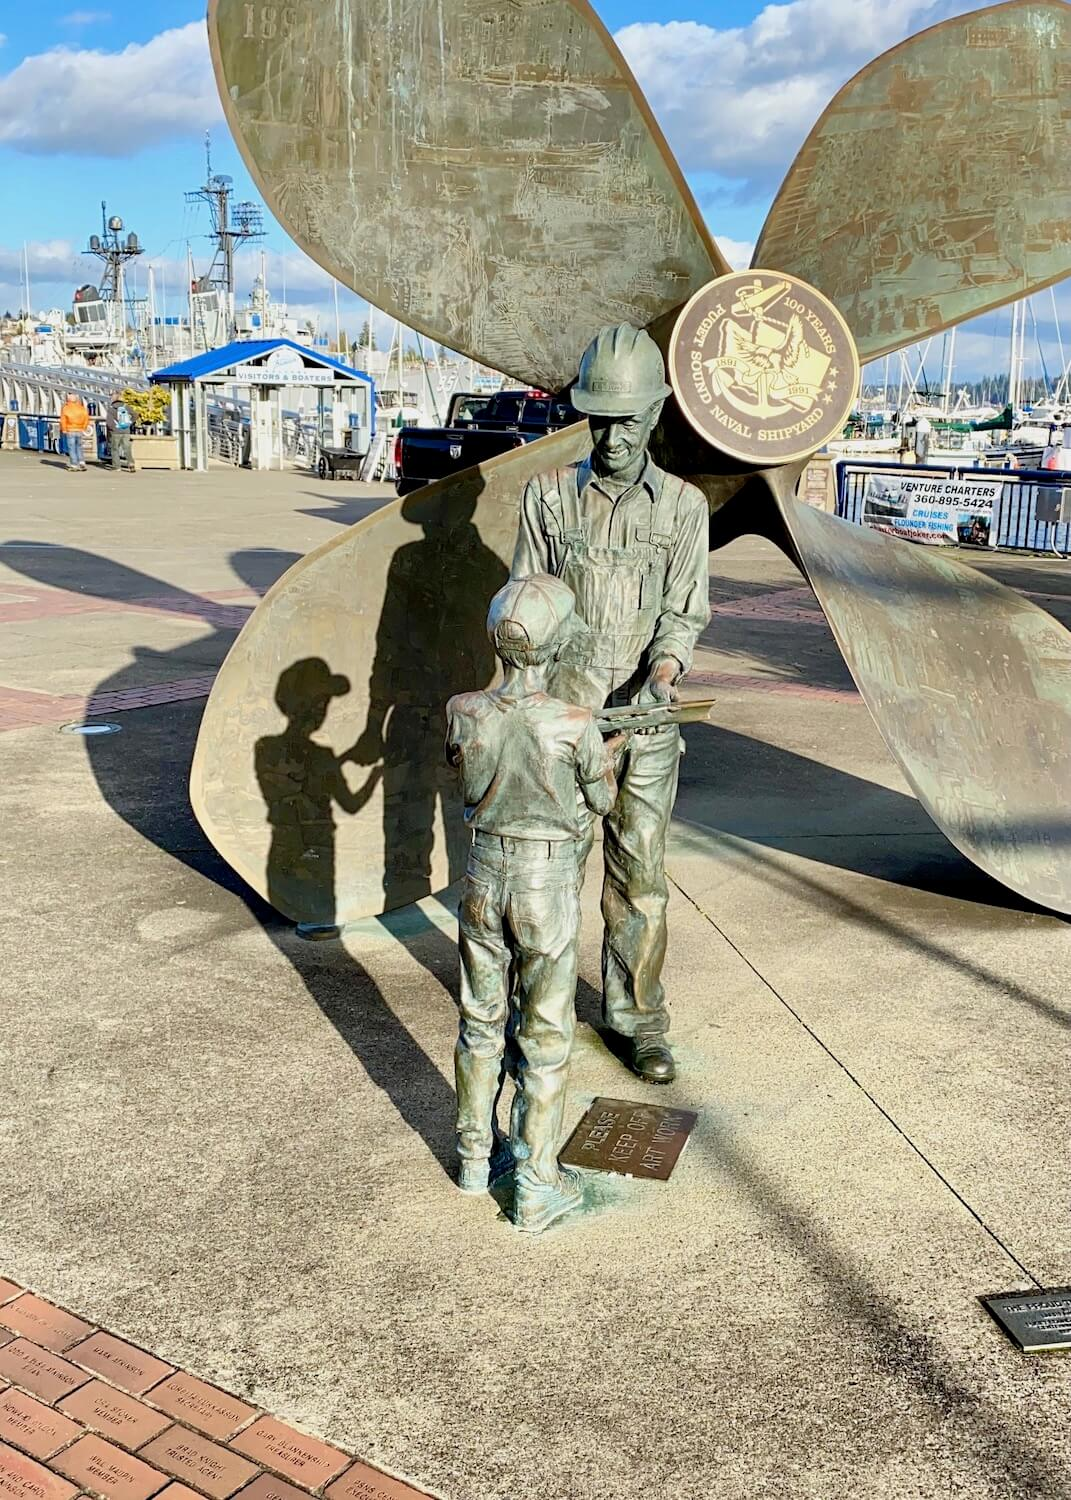 A bronze statue of a father passing on a shipbuilding tool to his young son. They are standing in front of a giant propulsion screw of a ship.